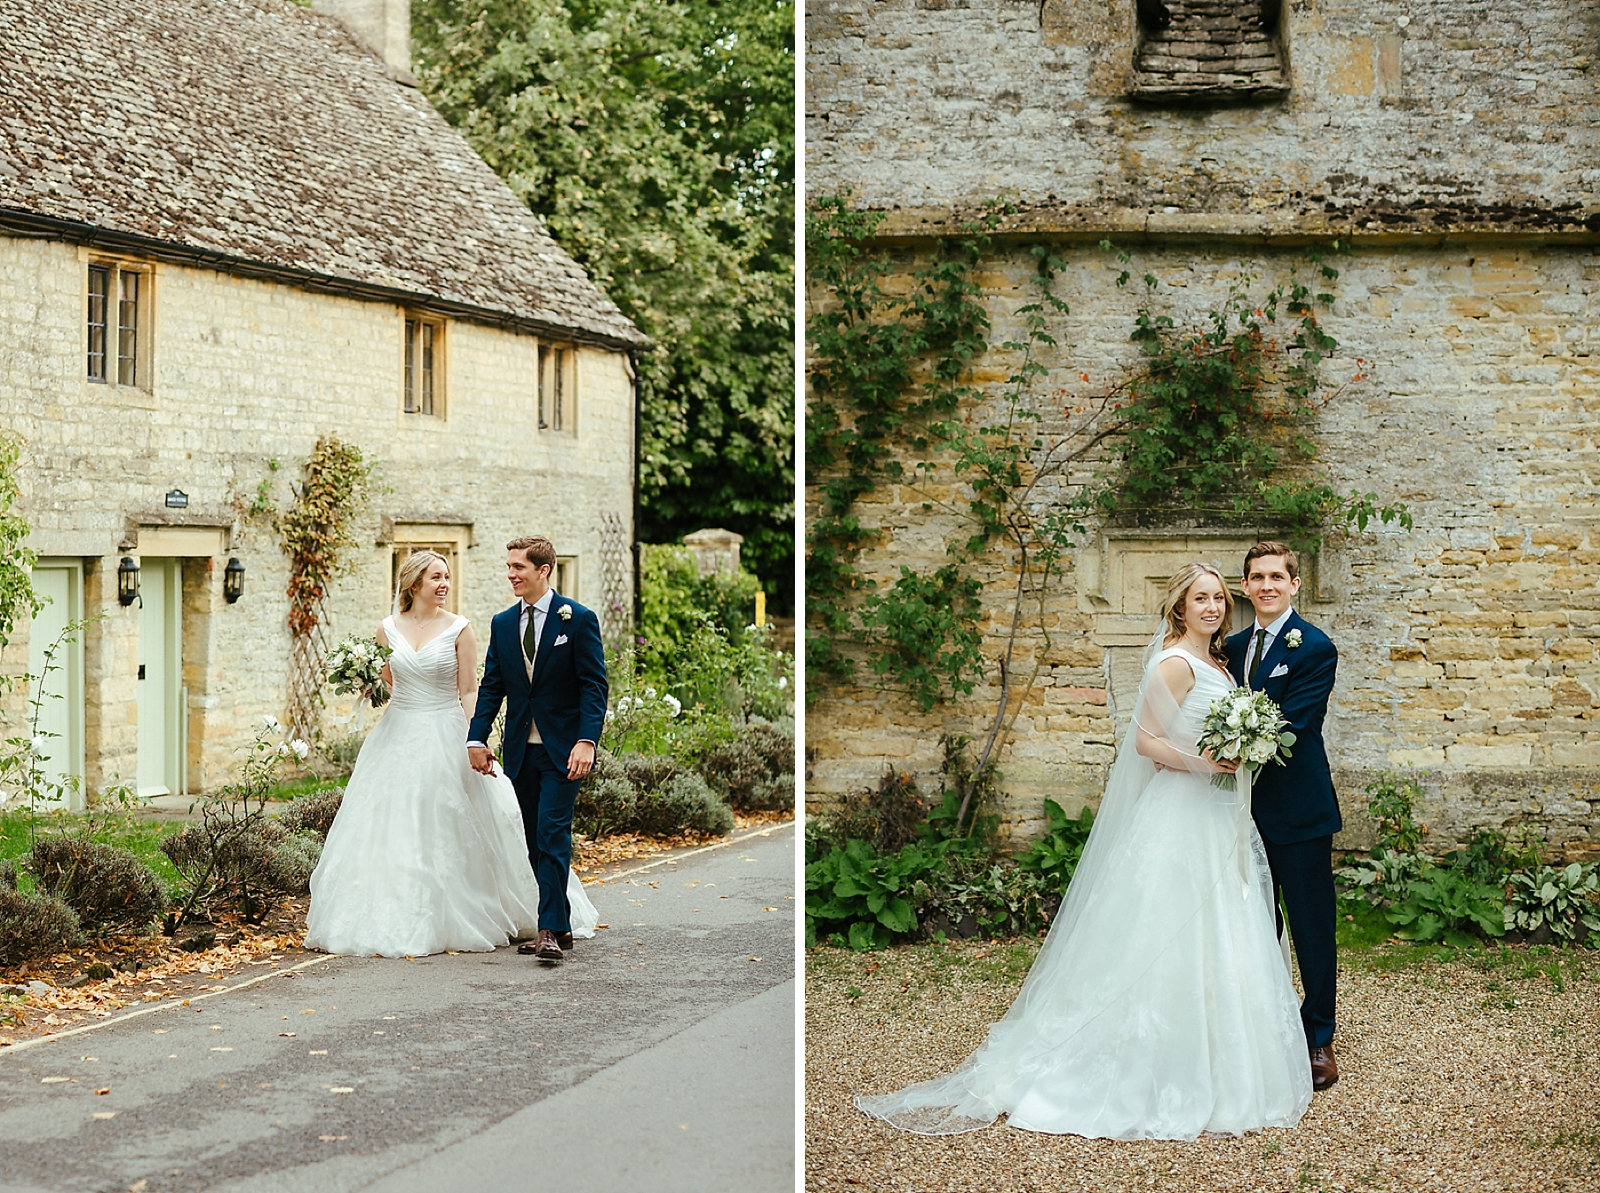 Relaxed wedding photography at Slaughters Manor House